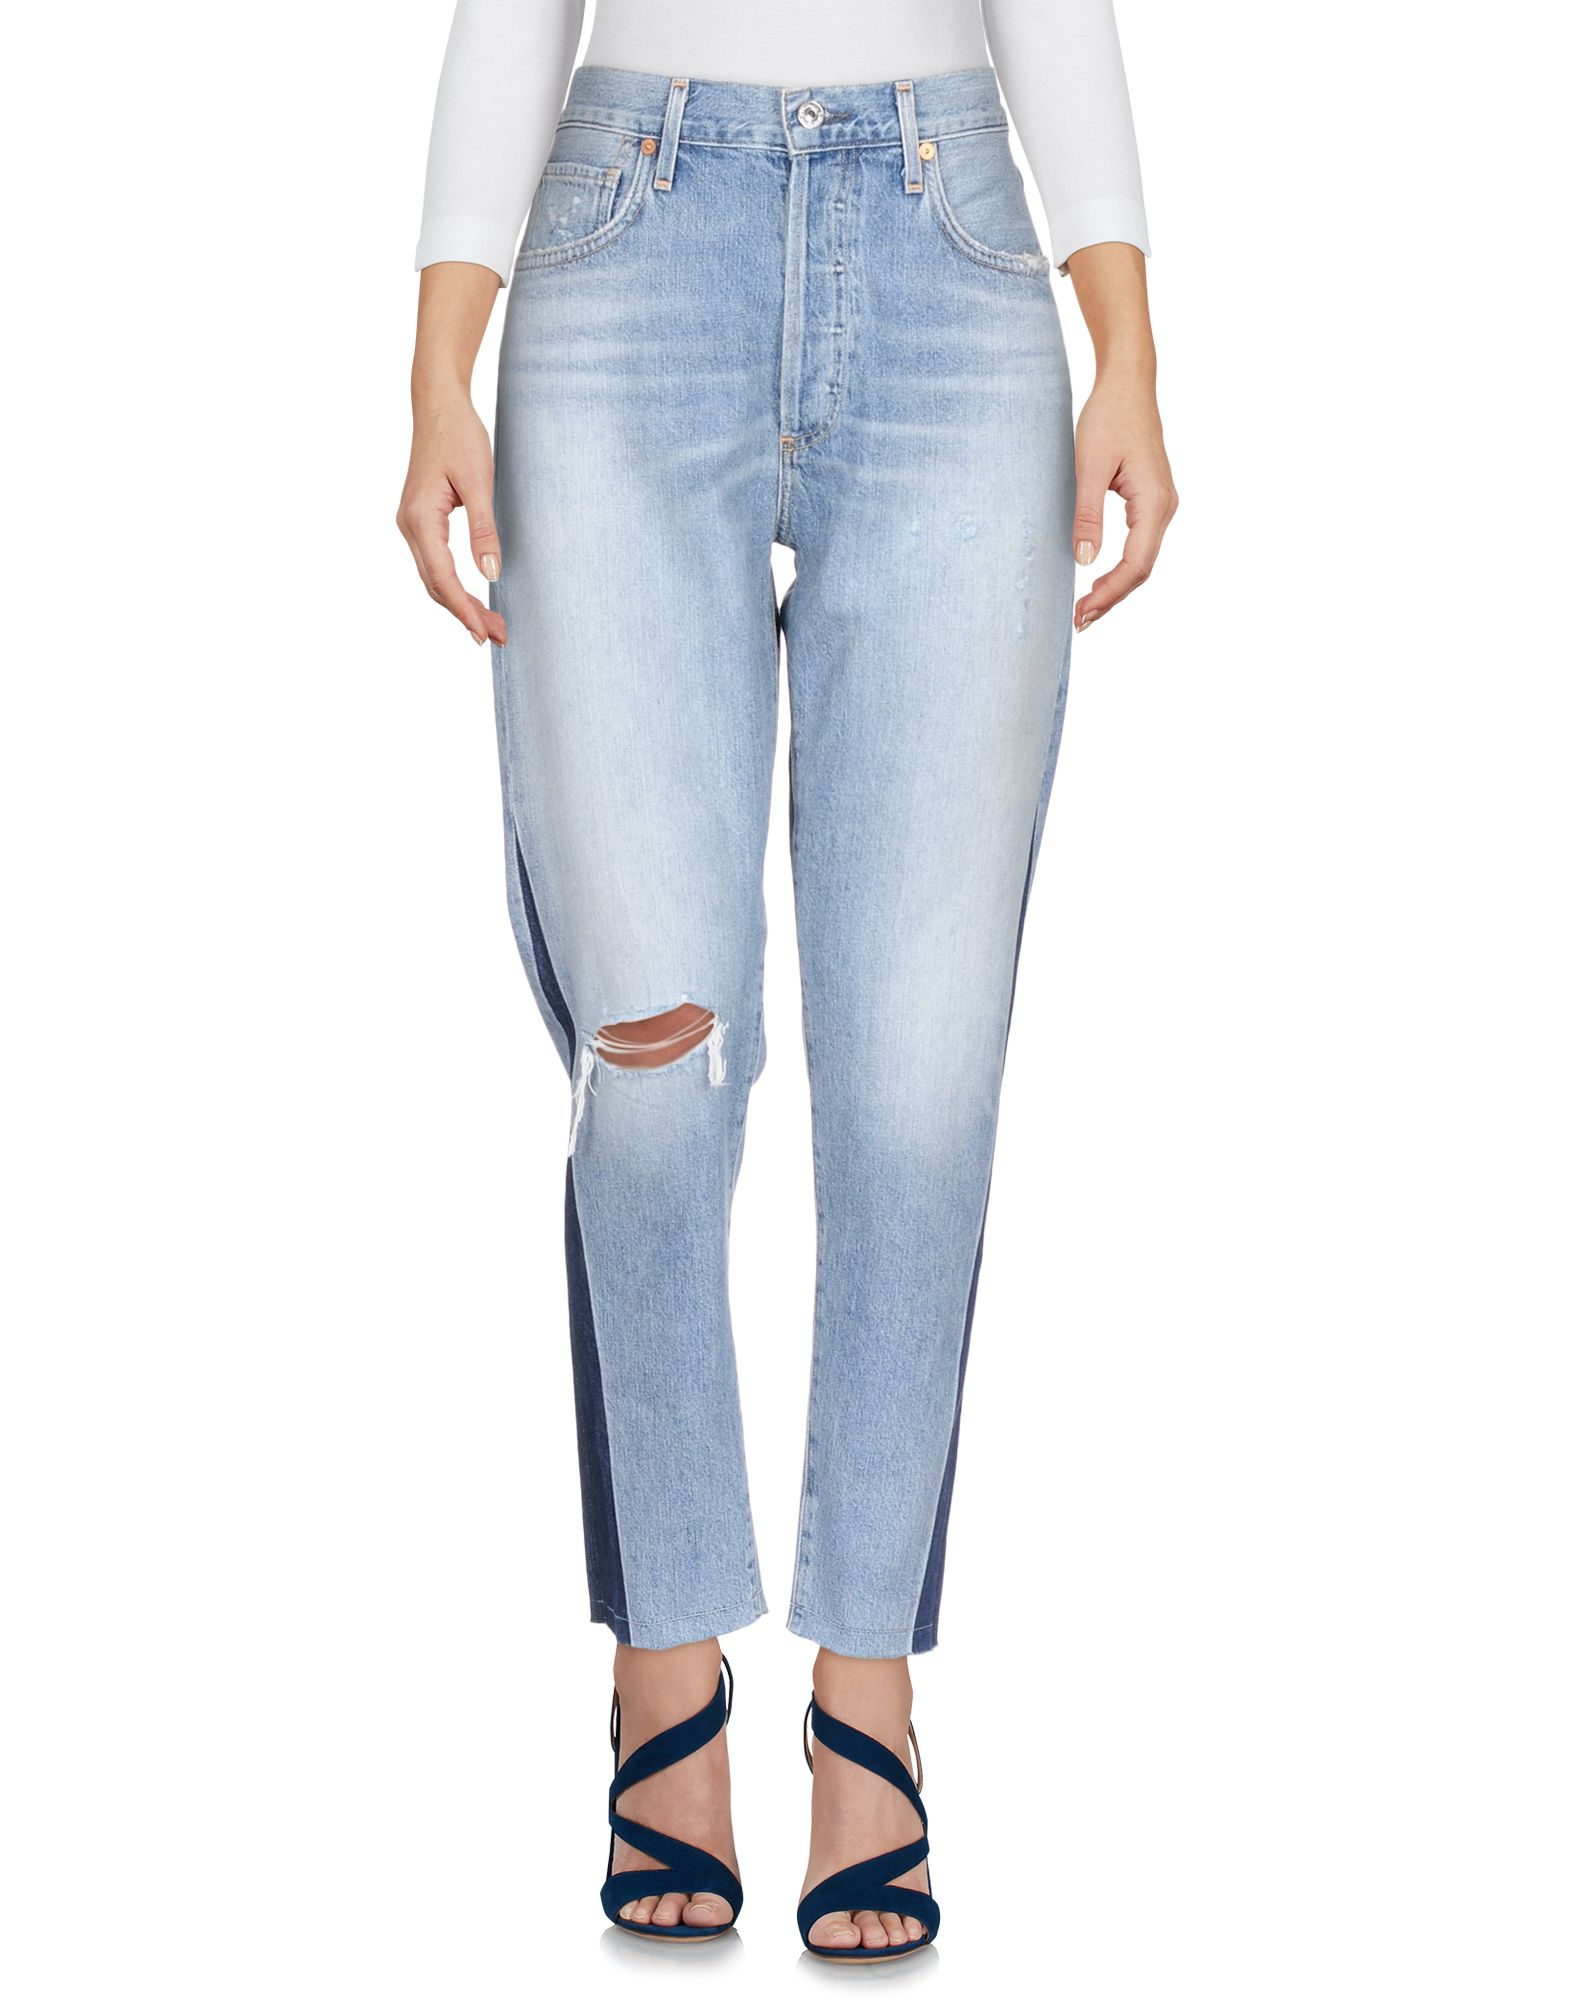 Pantaloni Jeans Citizens Of Humanity Donna - Acquista online su 7ckuE